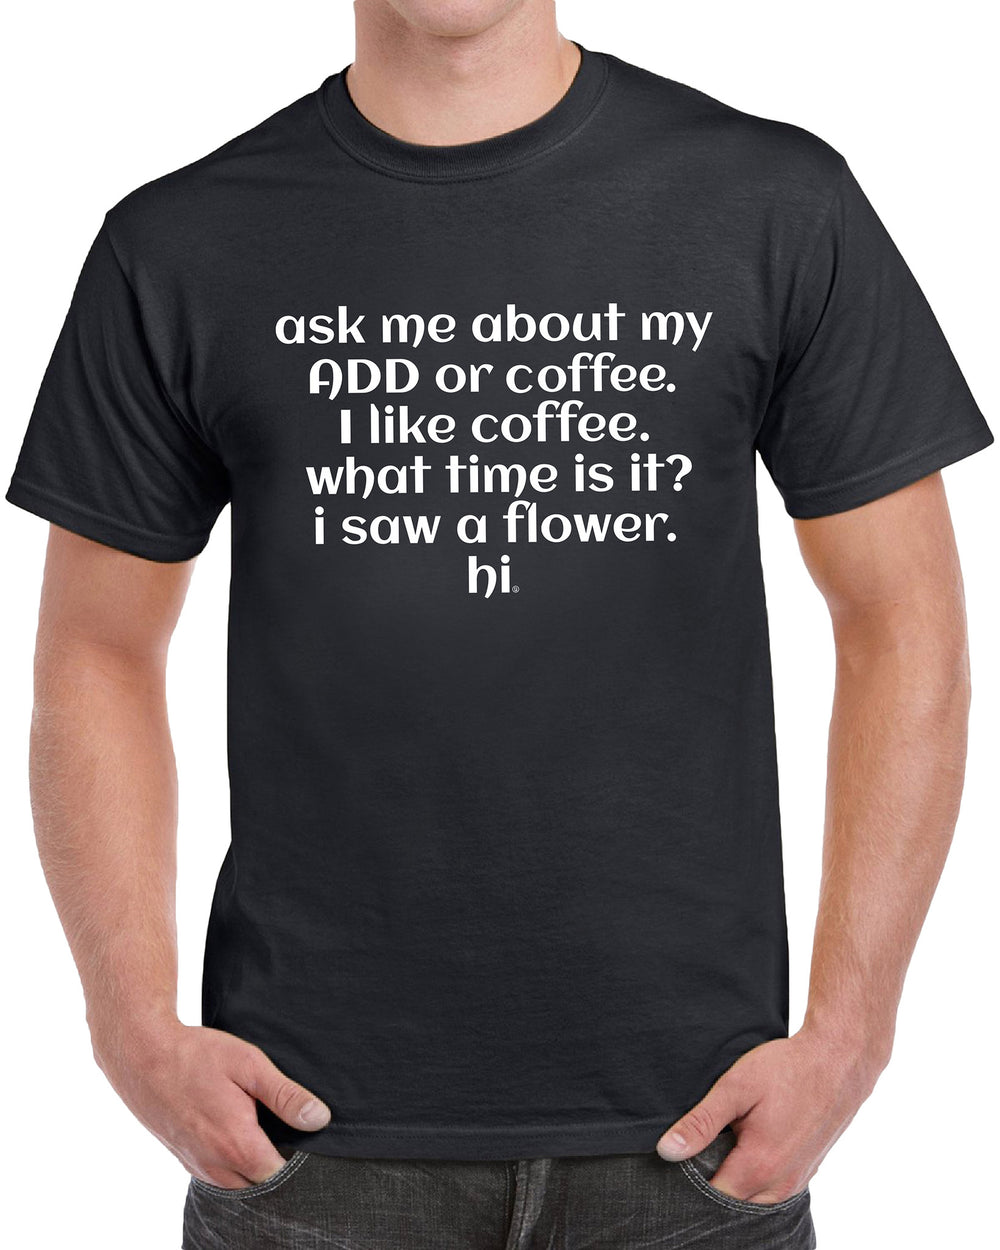 Ask Me About My ADD Men's Humor Funny T-Shirt - tees geek